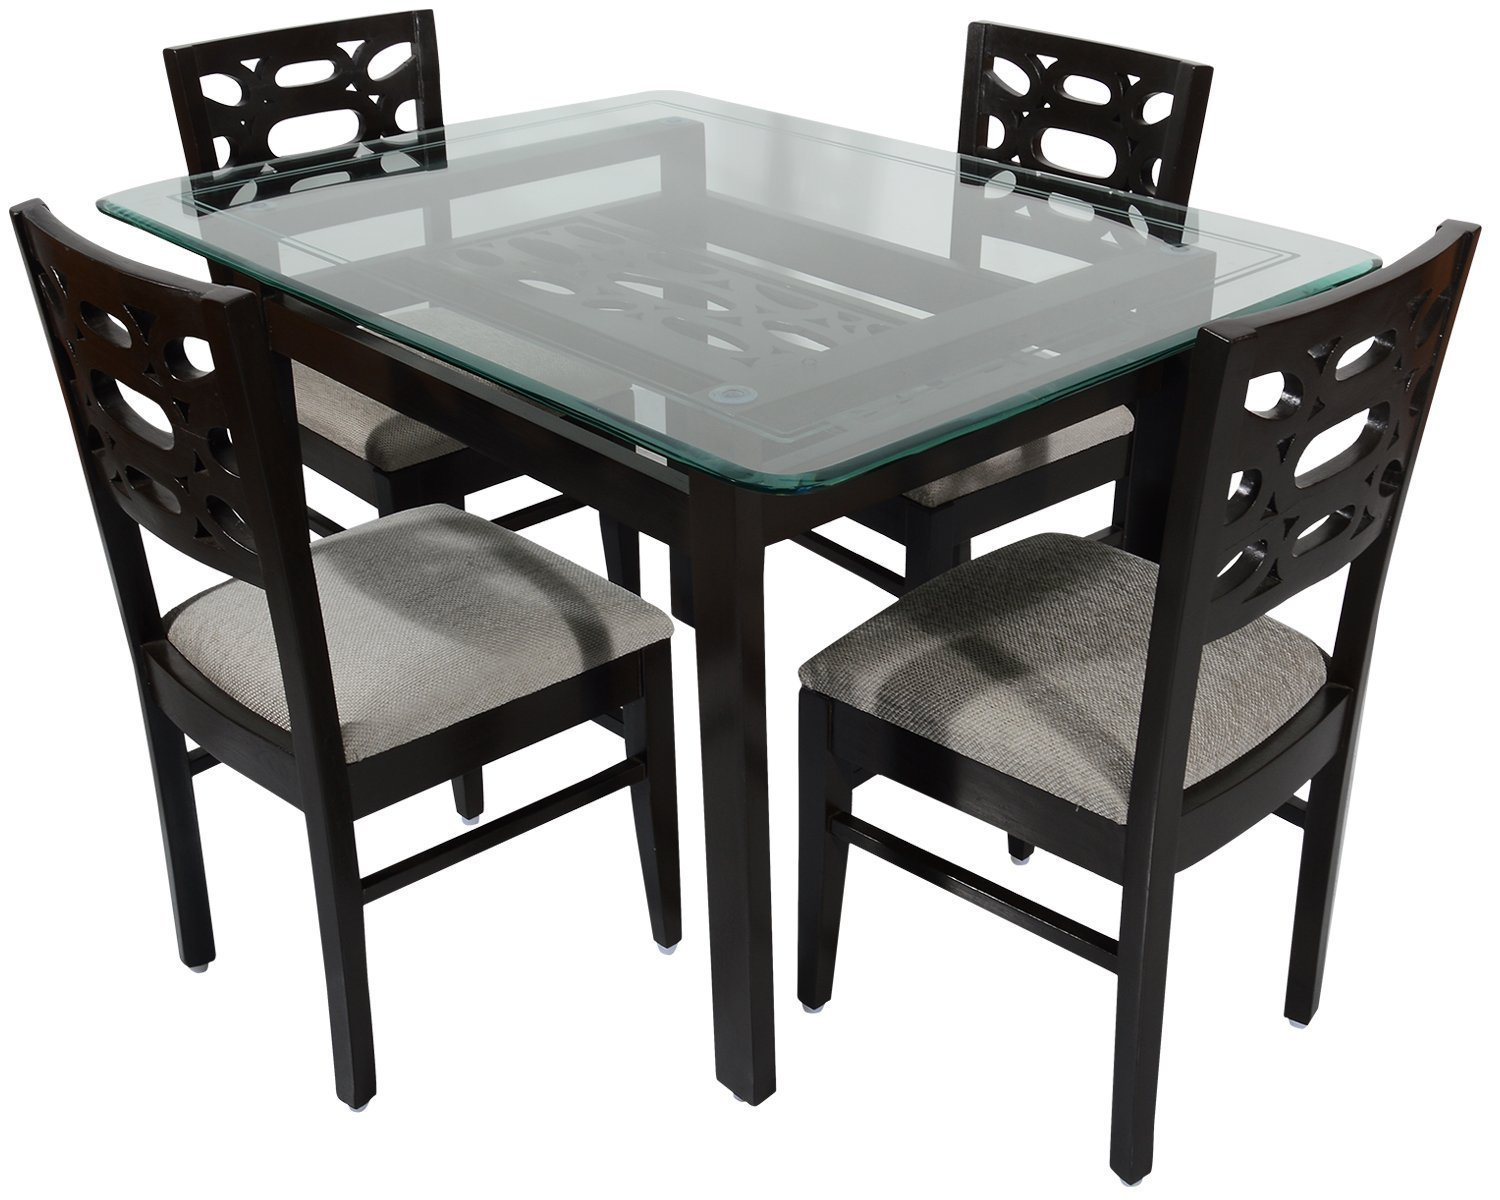 201 & Rawat Romania Four Seater Dining Table (Muticolour)